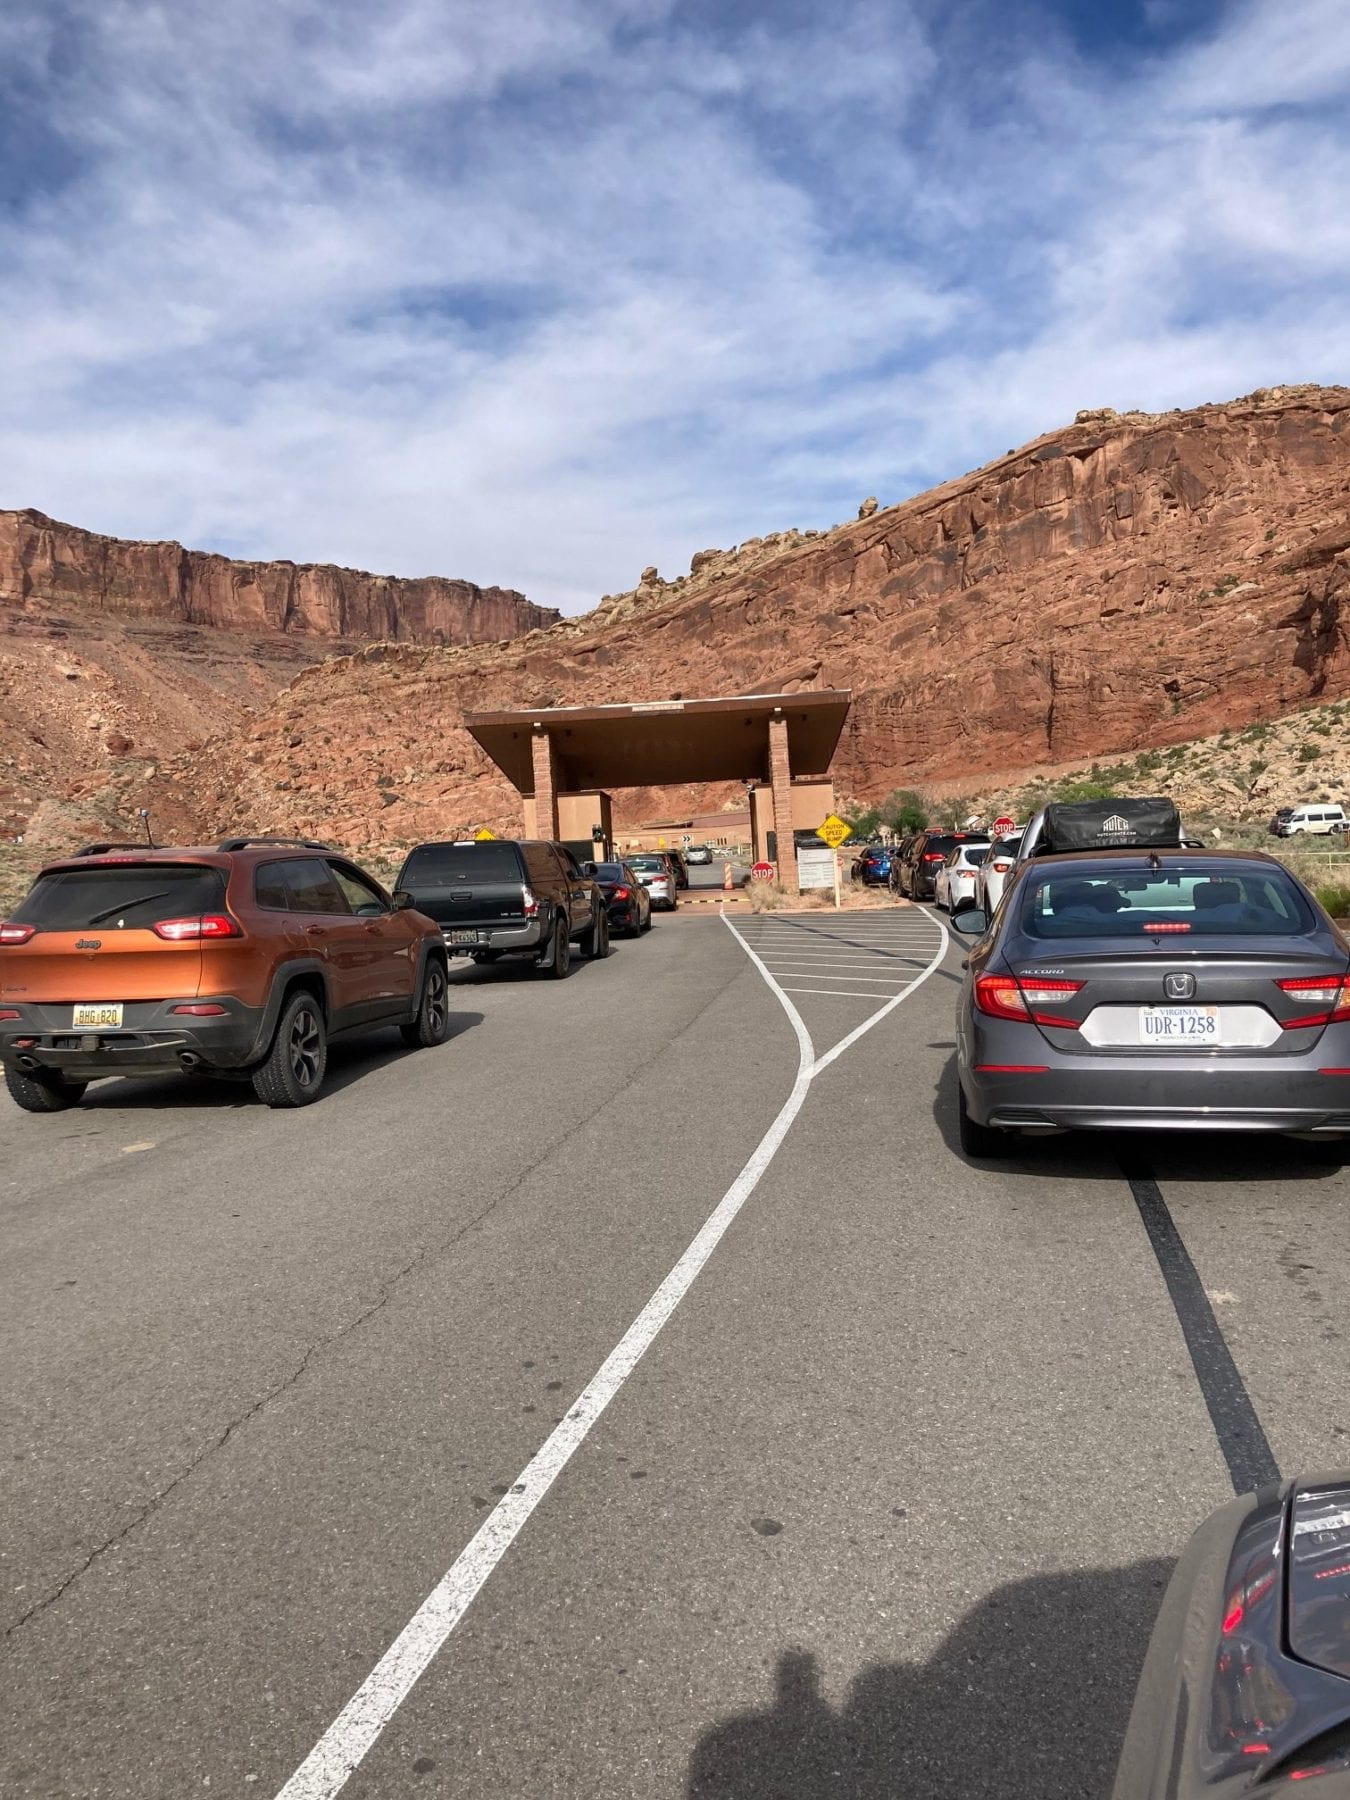 Arches National Park Admission